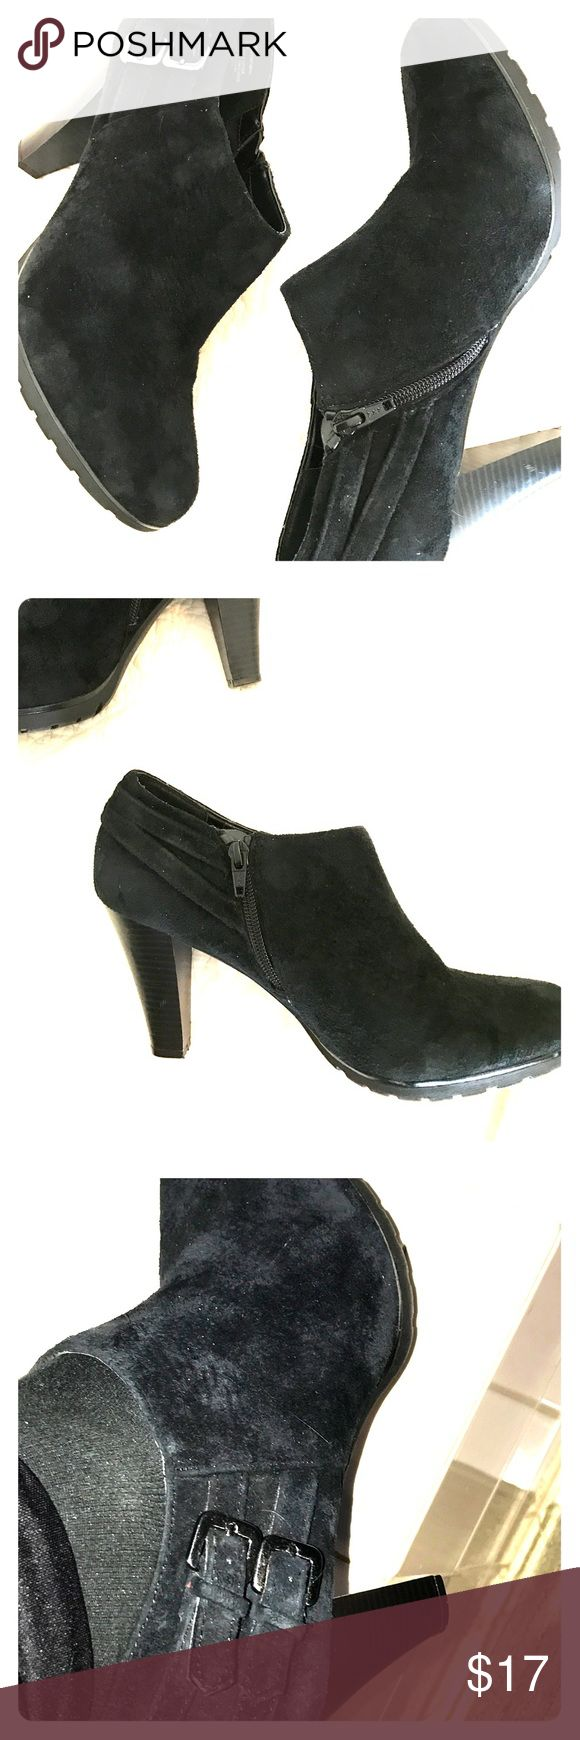 White mountain Shoe tees Black suede  👠. Leather uppers. Side zipper. Two buckles on the side. Approximate 3 1/2 inch heels. Barely worn. white mountain Shoes Ankle Boots & Booties